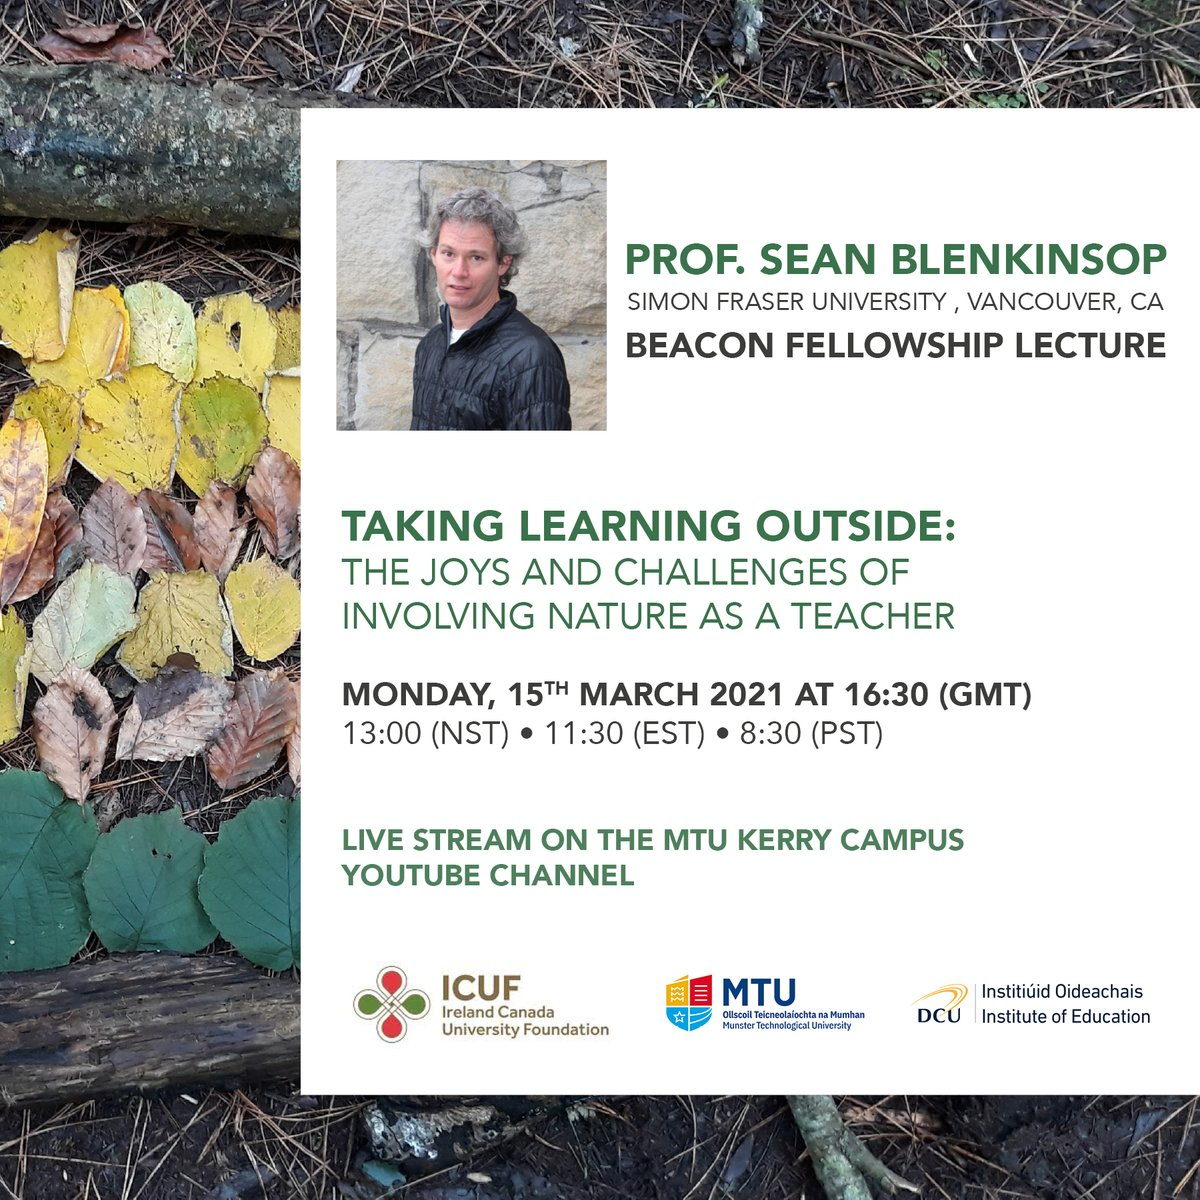 Sean Blenkinsop will be delivering a D'Arcy McGee Beacon Fellowship lecture on 15th March at 4:30pm(GMT).  Sean was nominated for this Fellowship from @ICUF_Awards by @MTU_ie and @DCU_IoE. The lecture will  be streamed live on https://t.co/HFgviki8U2. https://t.co/kjrGiJmiQu